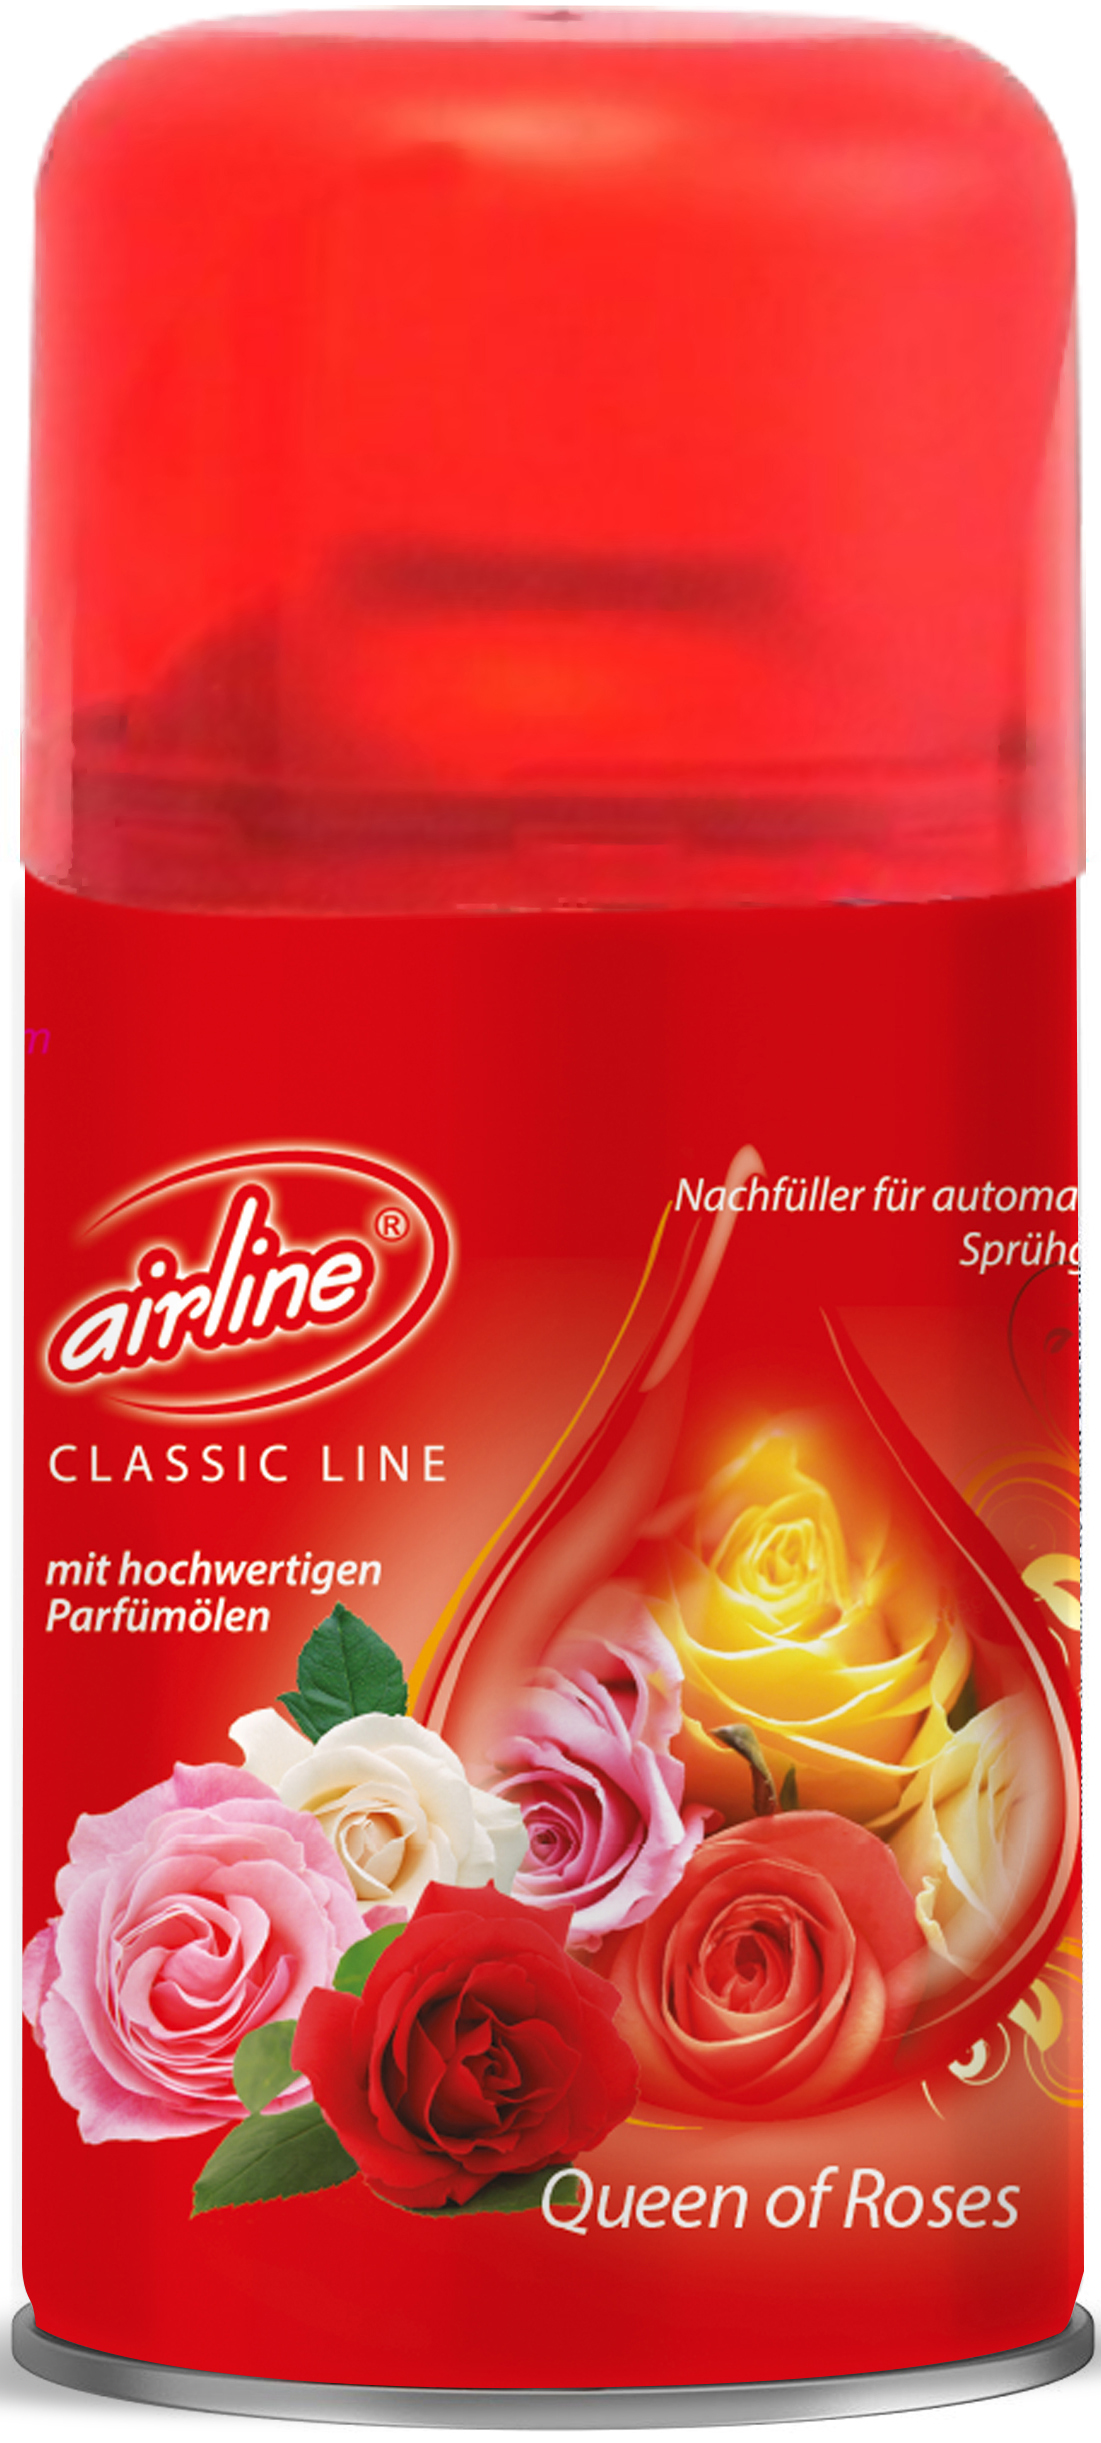 00509 - Classic Line queen of roses refill 250 ml